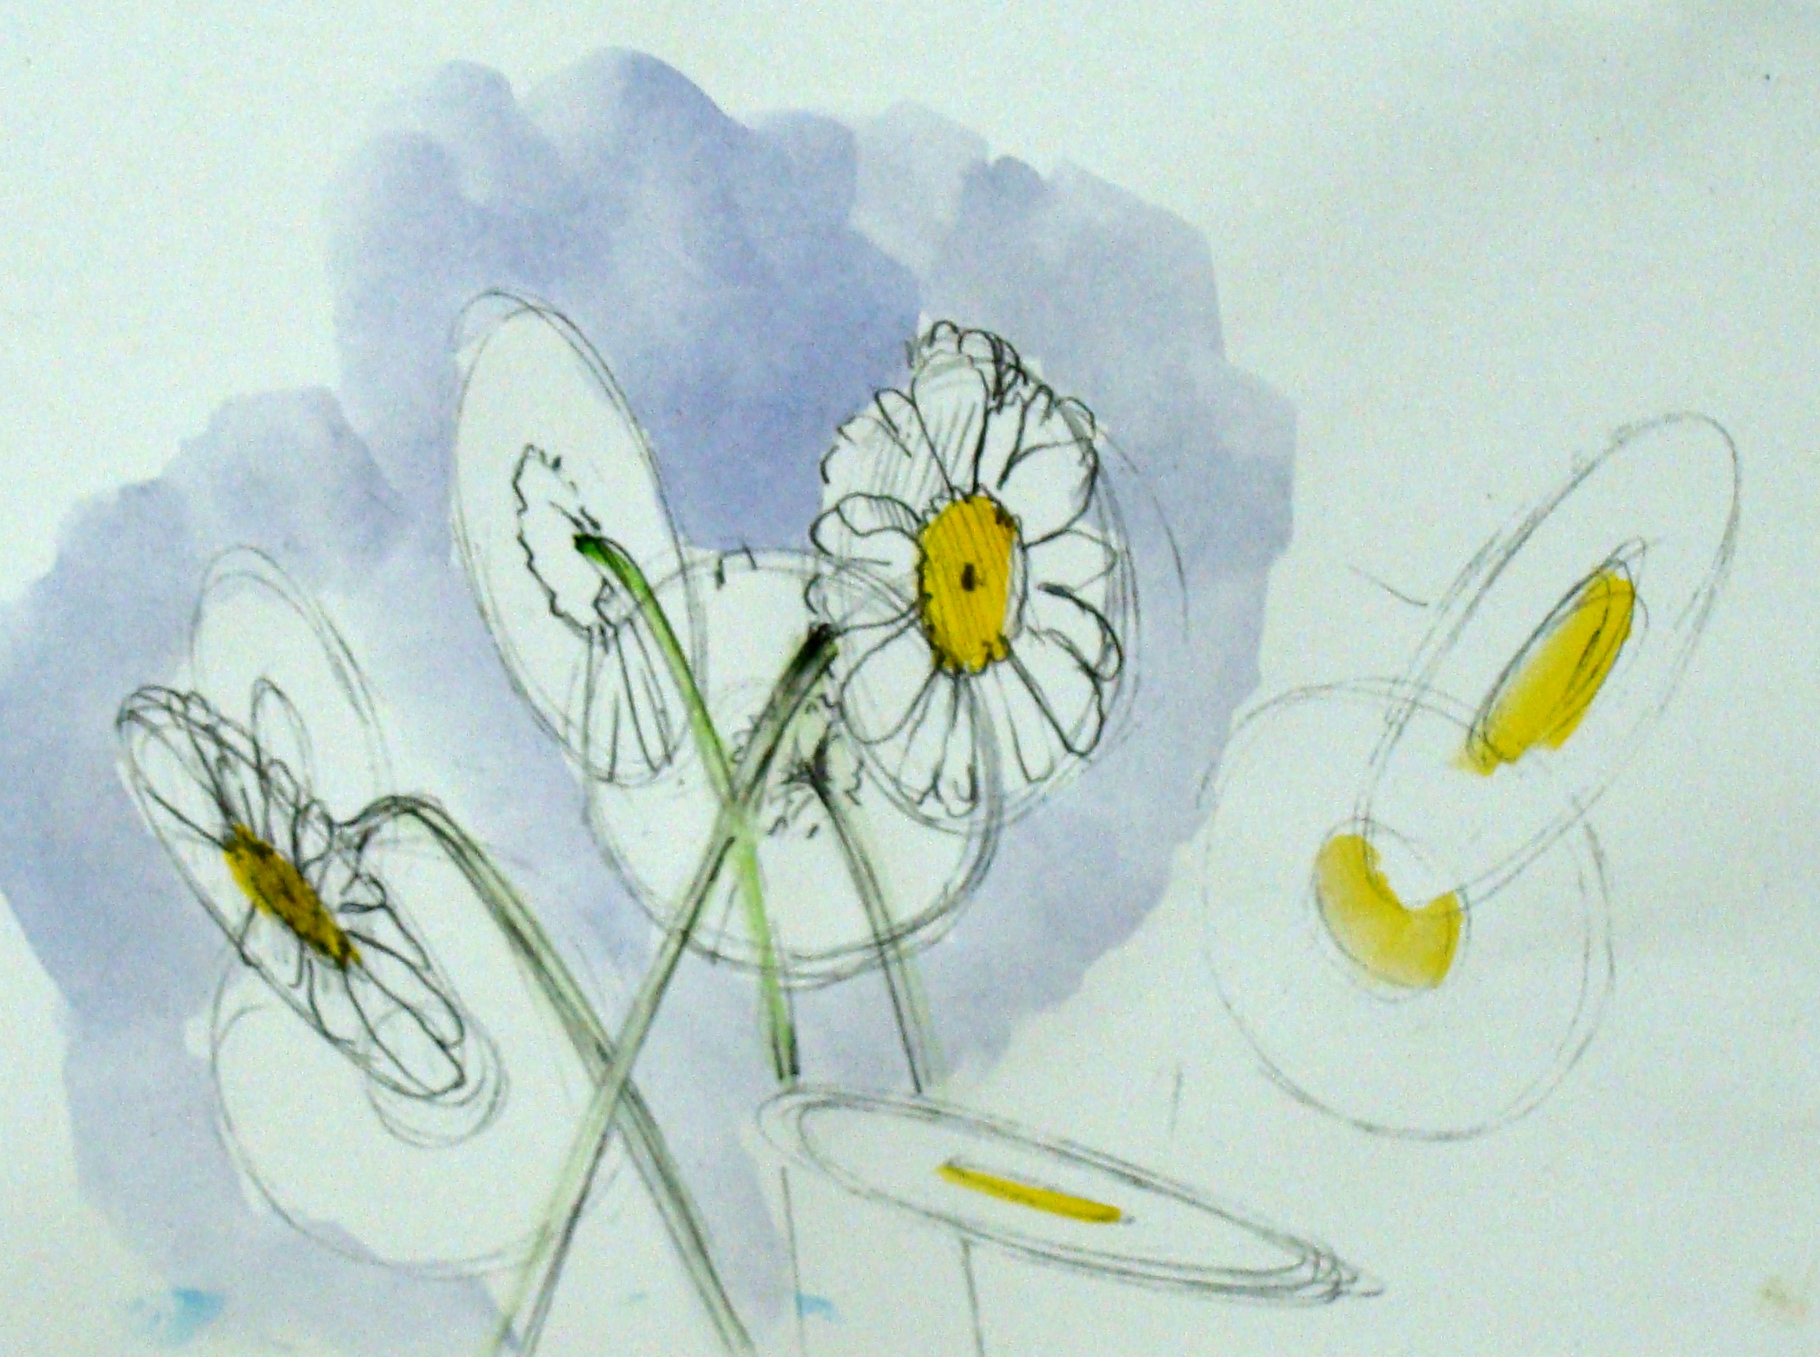 Daisy Flower Line Drawing : Daisy drawing at getdrawings free for personal use